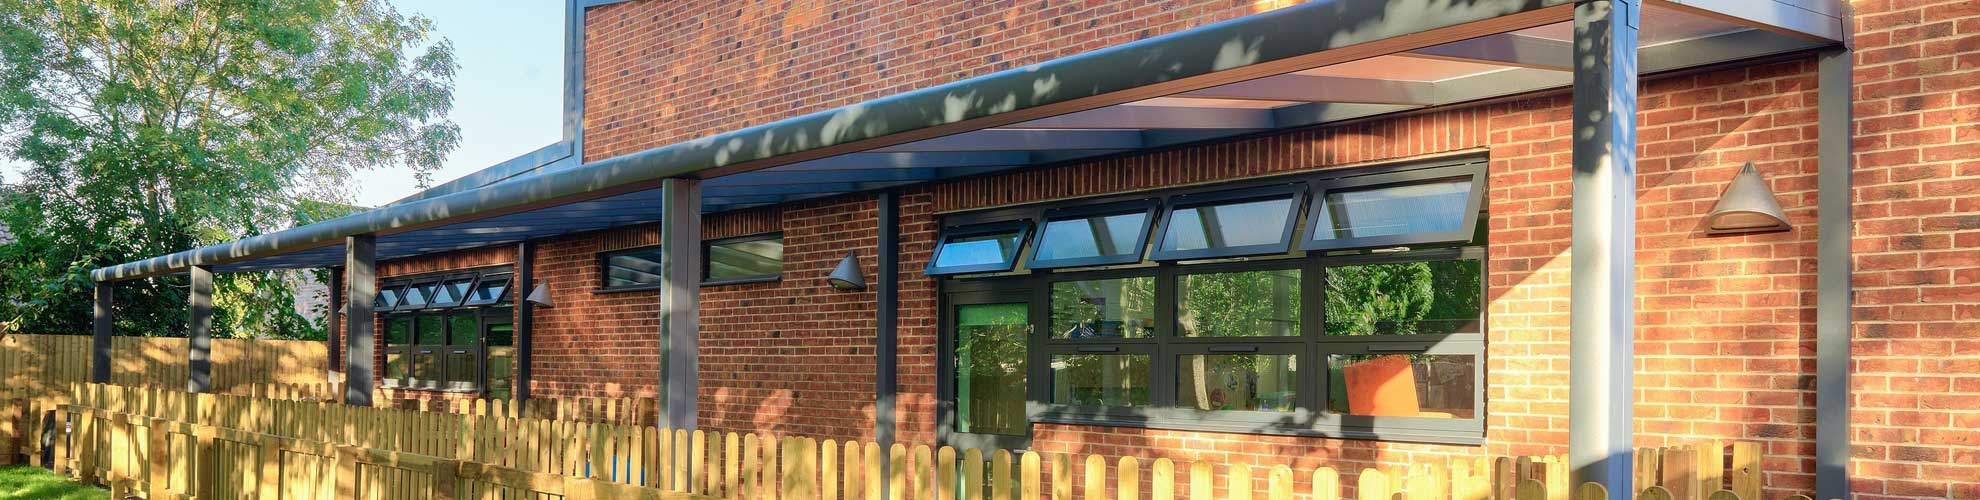 Fixed canopies school canopies and outdoor learning areas & Outdoor and School Canopies | Kensington